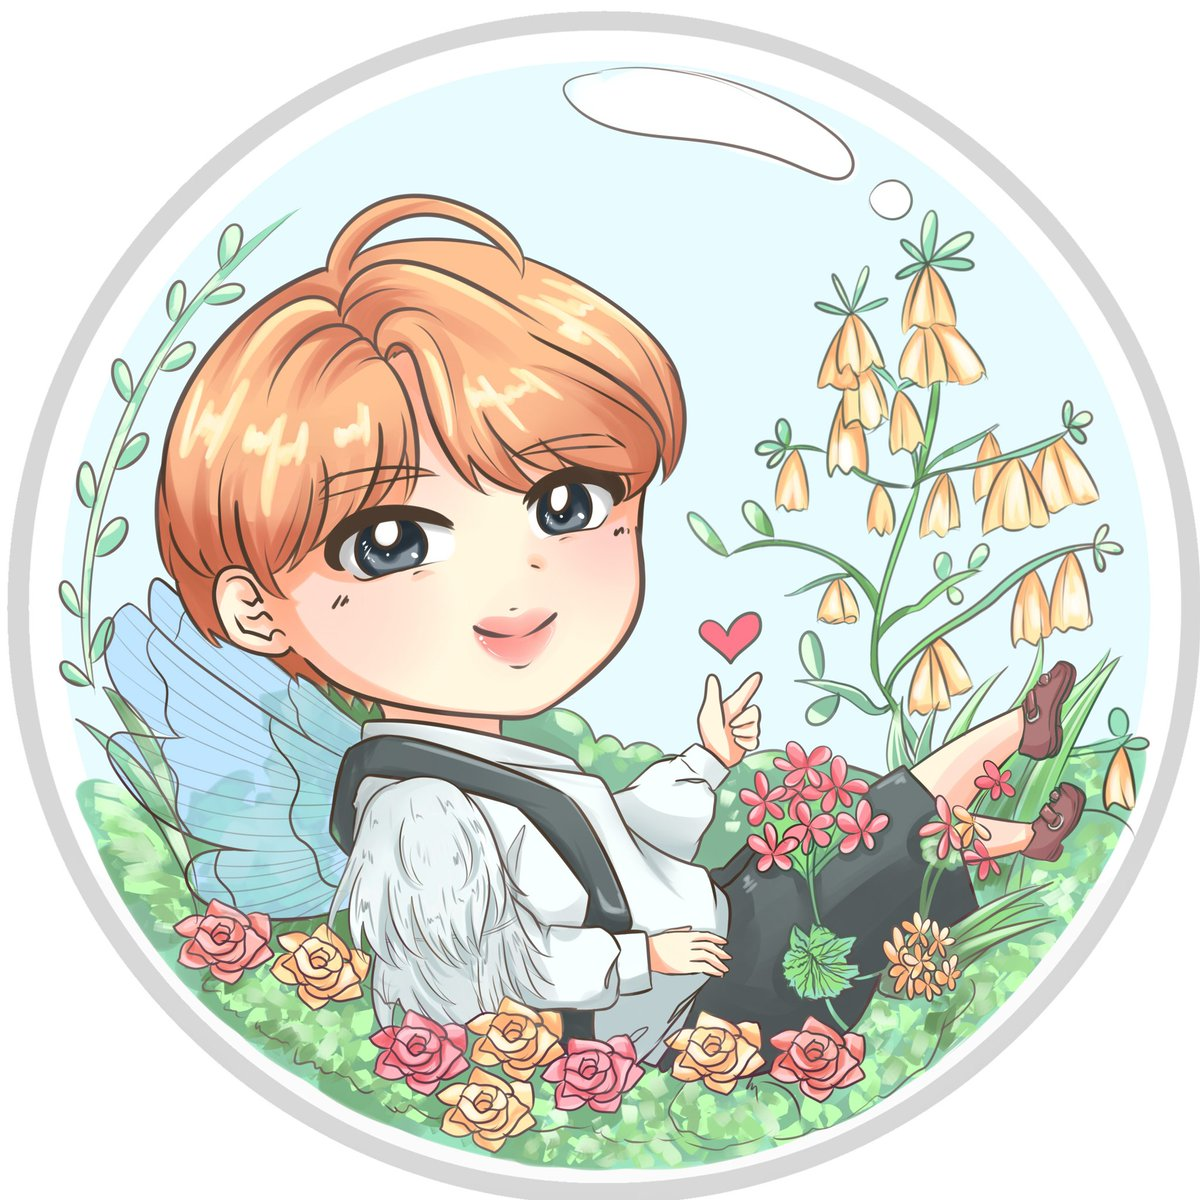 Fairy Jin :) First of 7 Fairy connecting charms I&#39;ll be working on! These will come in glitter, translucent epoxy   Pray 4 me   STREAM EPIPHANY  https:// youtu.be/fIkZOLsnoqY  &nbsp;    #JINTRO #seokjin #진 #LOVE_YOURSELF_結_Answer #LOVE_YOURSELF #btsartmy #btsfanart #rj #bt21 @BTS_twt <br>http://pic.twitter.com/l0GAAAg6vc